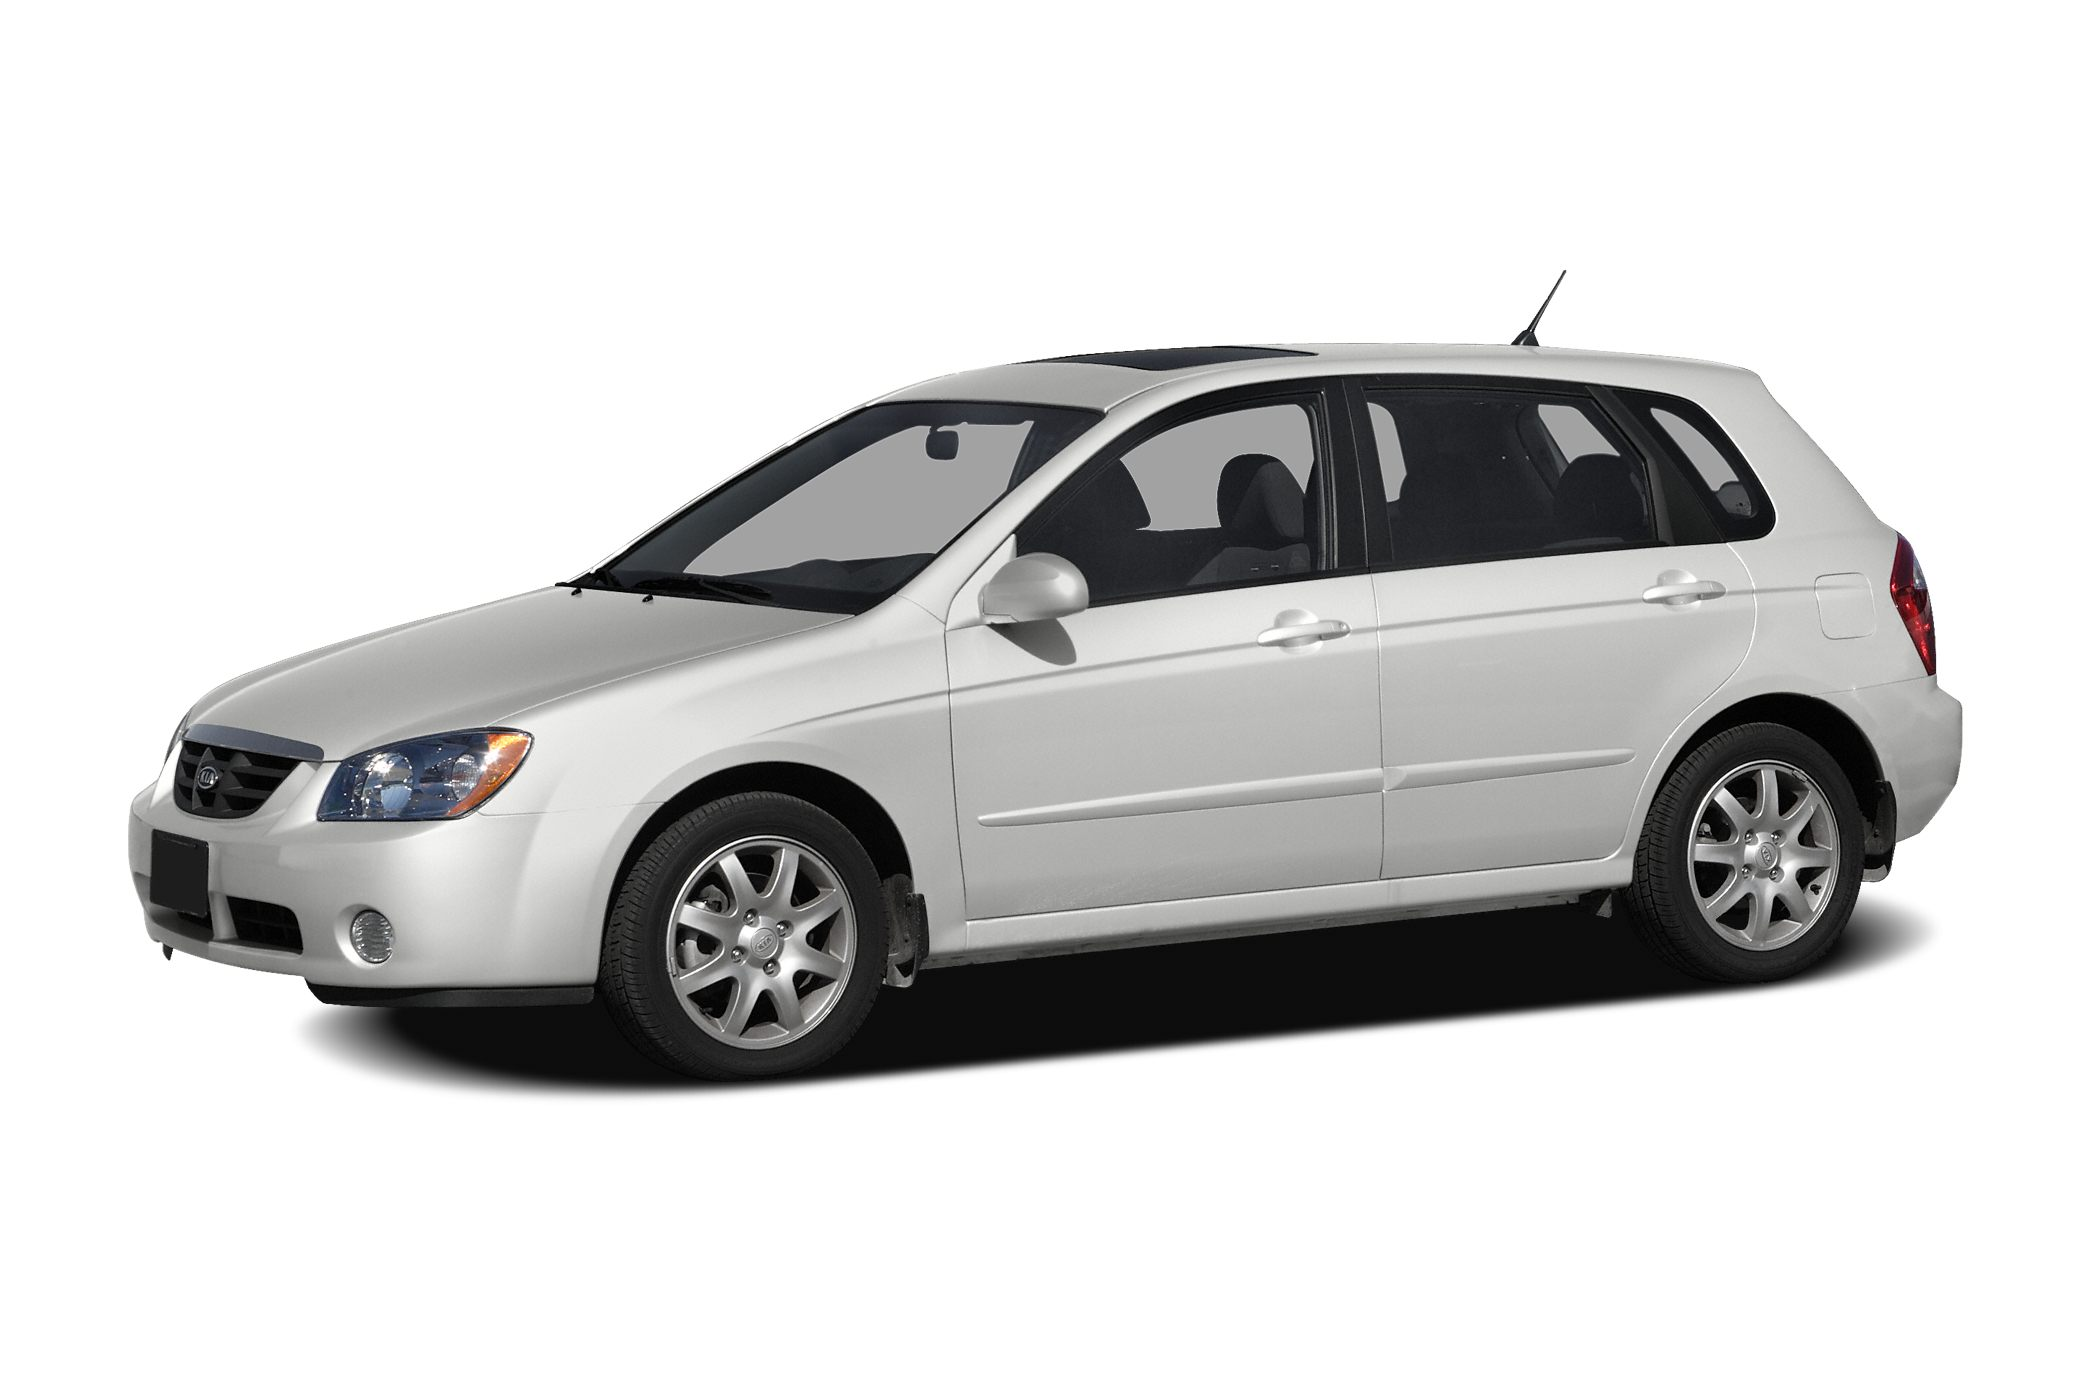 2008 Kia Spectra5 SX Hatchback for sale in Paterson for $5,950 with 101,000 miles.